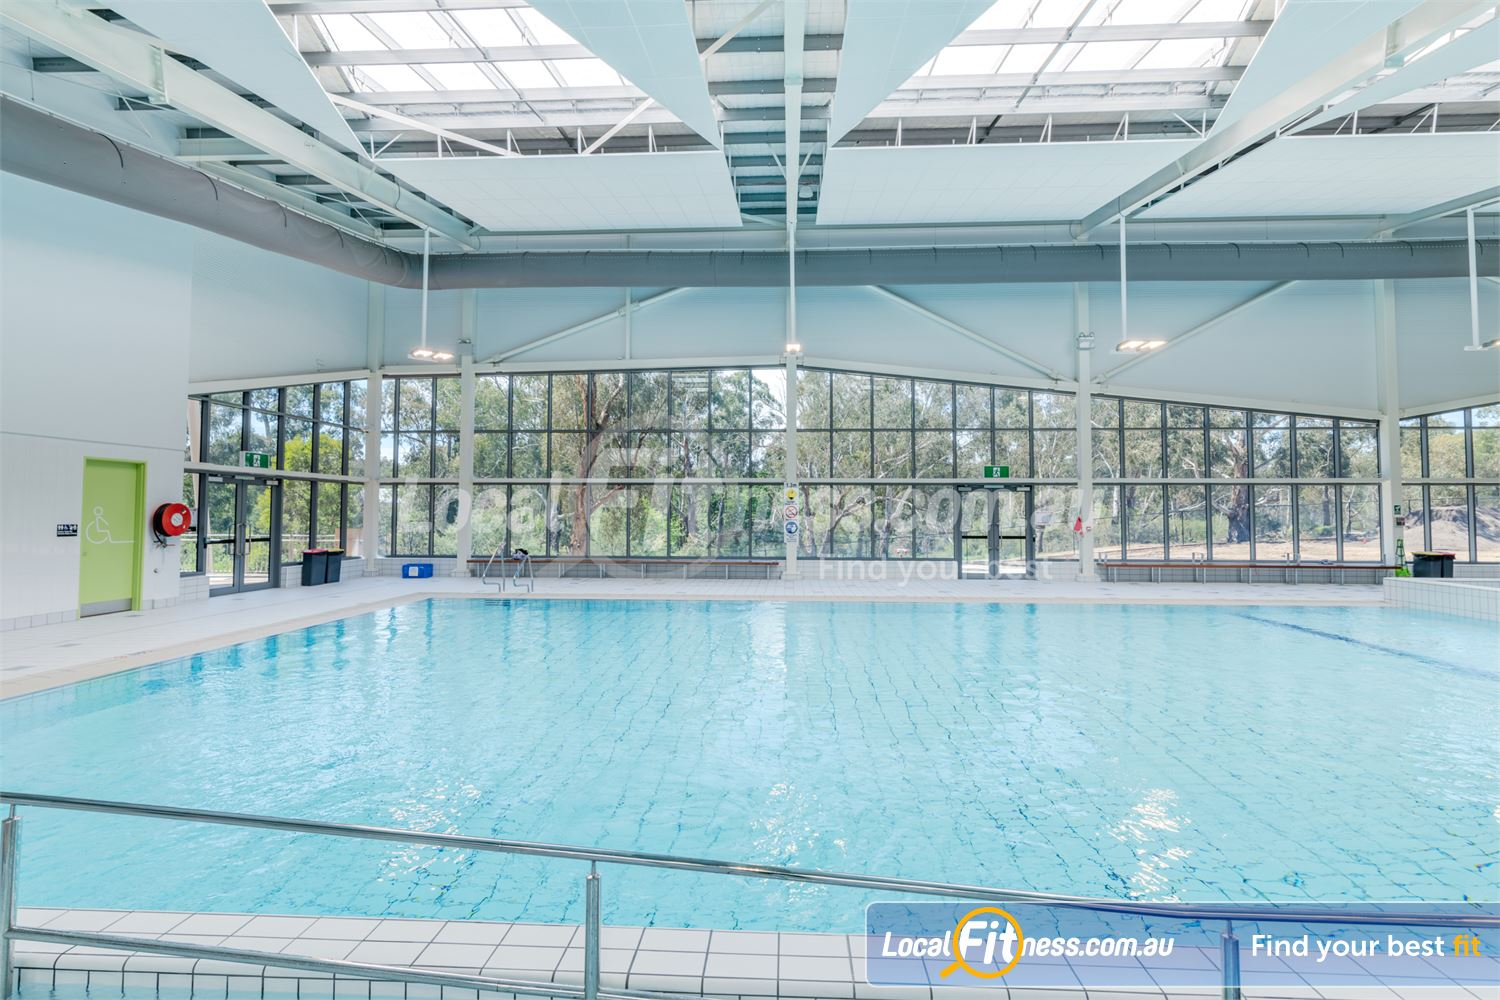 Eltham leisure centre eltham gym free 5 day trial - How to warm up swimming pool water ...